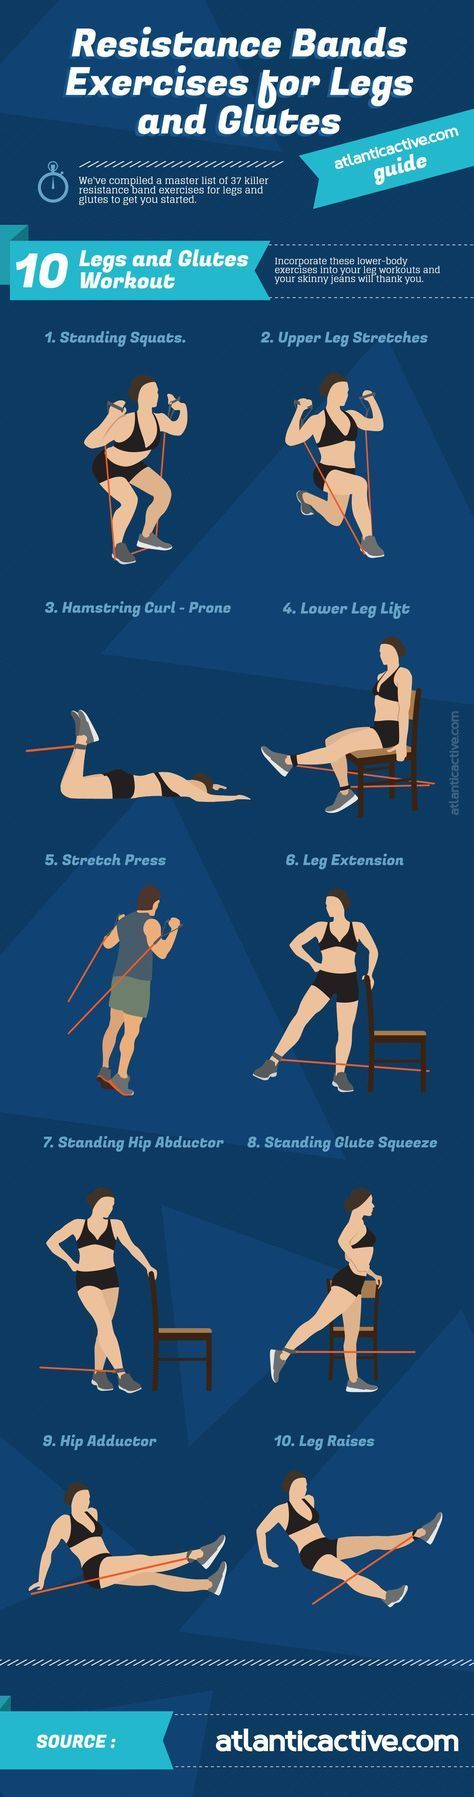 Resistance Band Exercises for Legs and Glutes